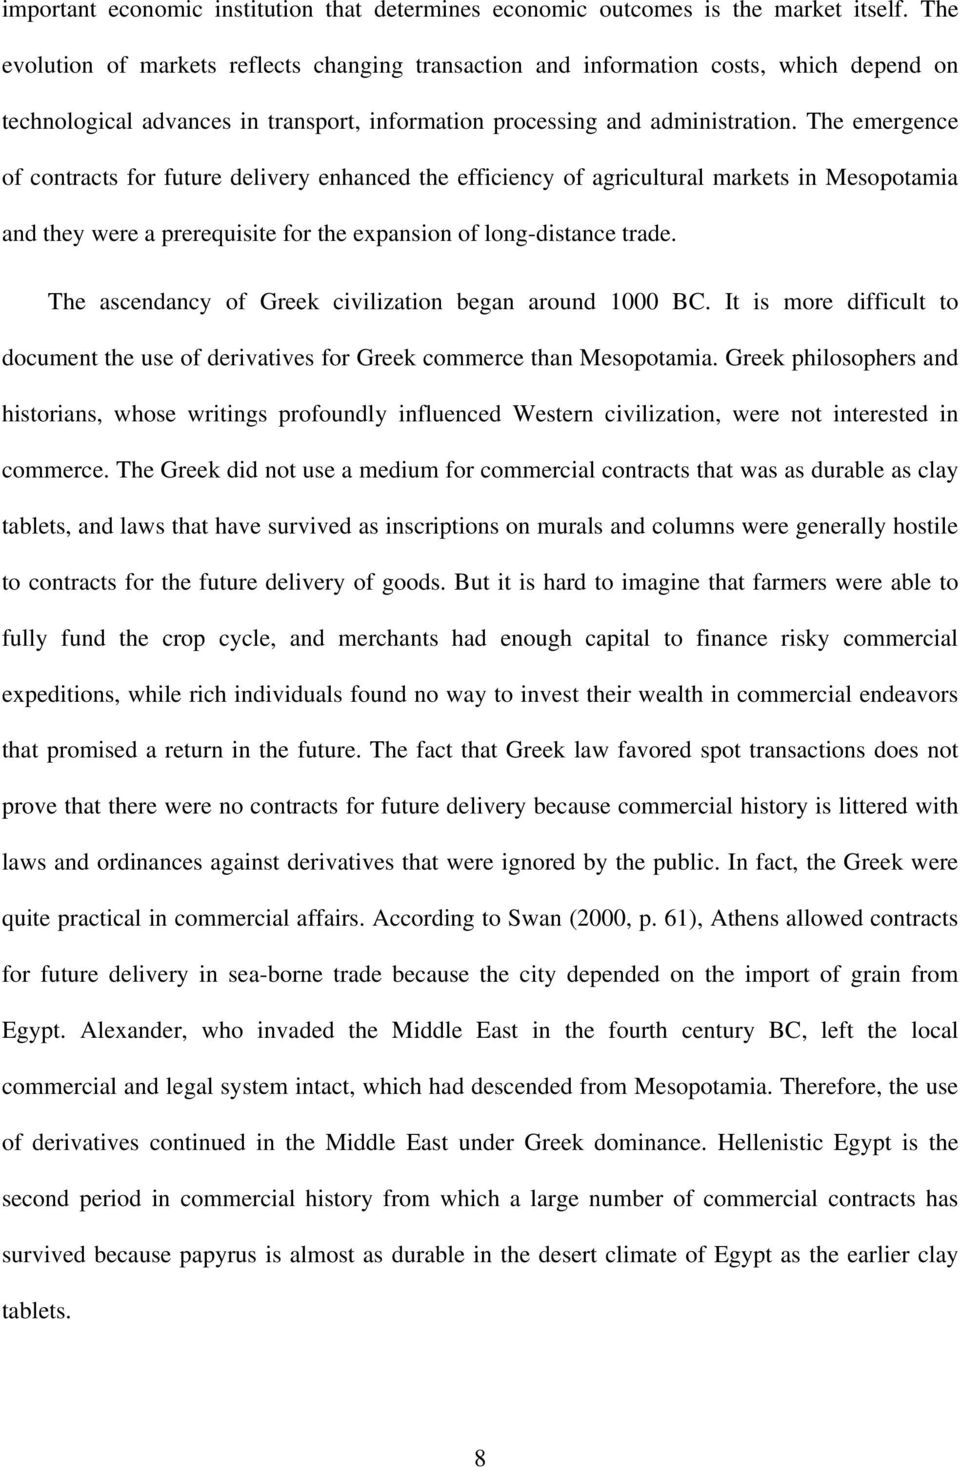 The emergence of contracts for future delivery enhanced the efficiency of agricultural markets in Mesopotamia and they were a prerequisite for the expansion of long-distance trade.